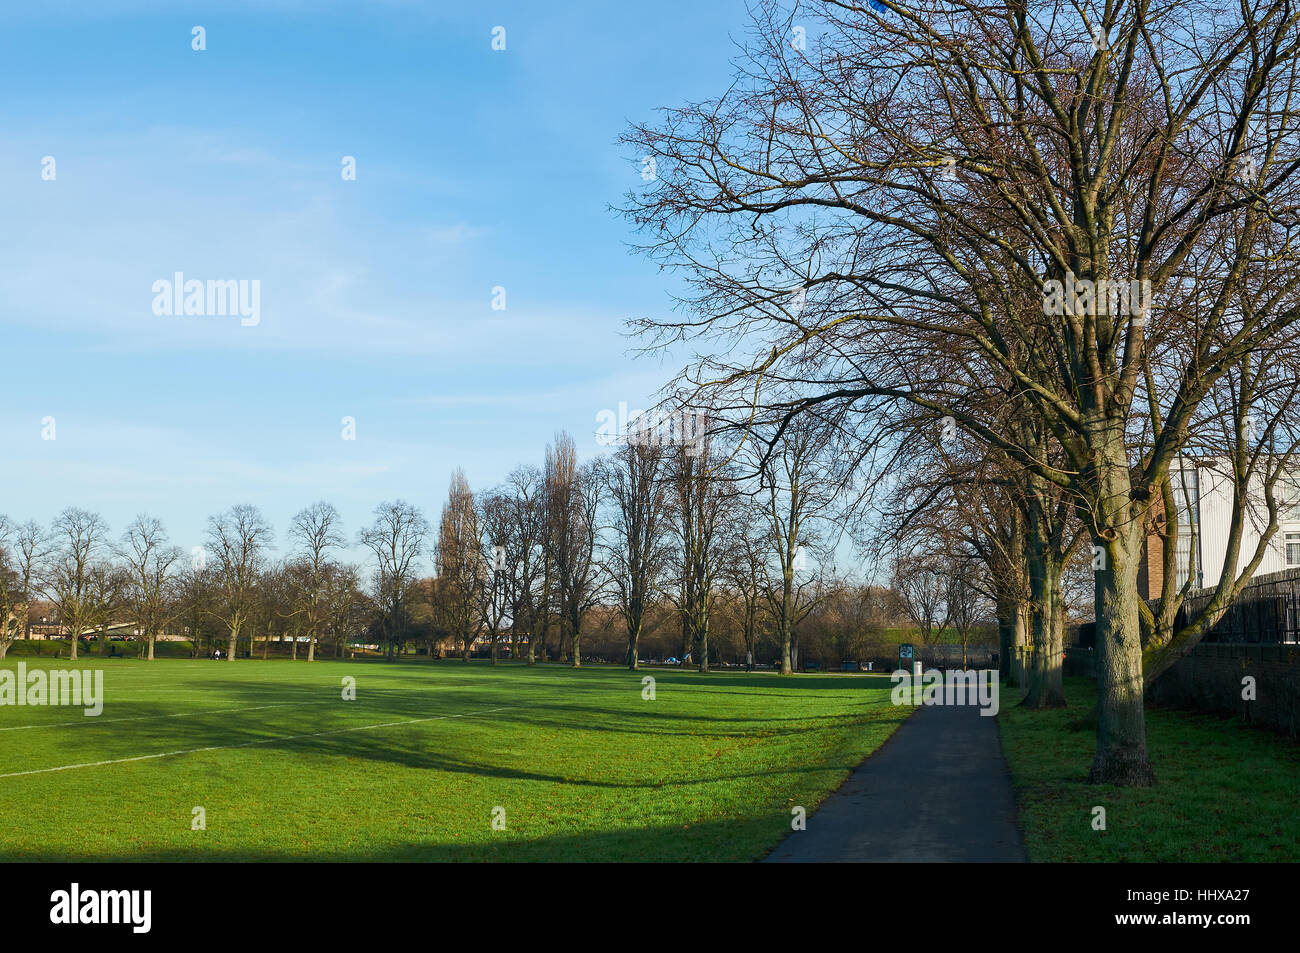 Markfield Park, South Tottenham, London UK, in winter - Stock Image